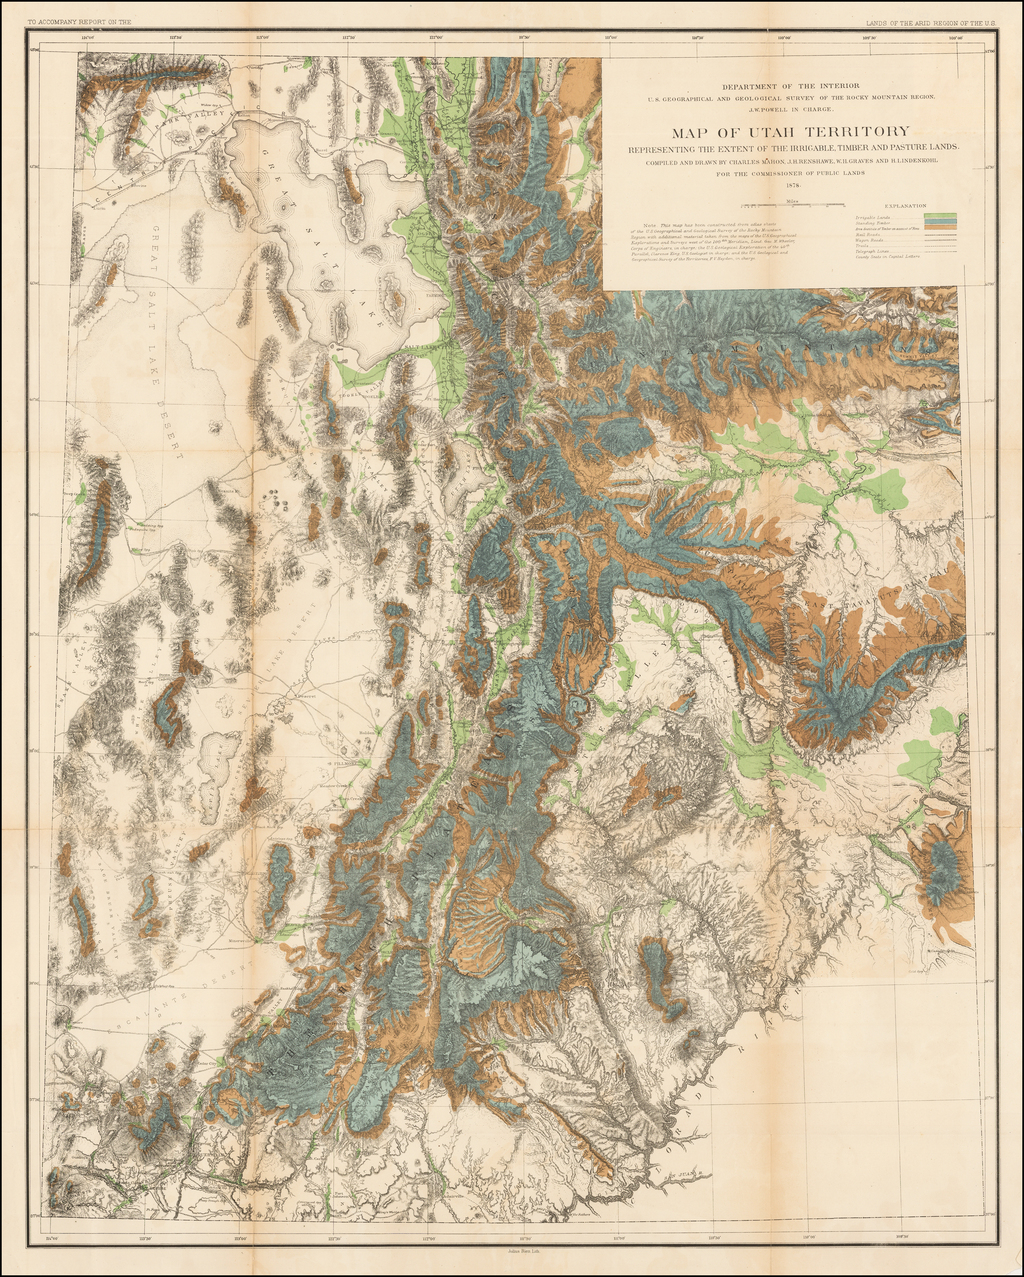 Map of Utah Territory  Representing The Extent of the Irrigable, Timber and Pasture Lands.  Compiled and Drawn by Charles Mahon, J.H. Renshawe, W.H. Graves and H. Lindenkohl For The Commissioner of Public Lands.  1878. By U.S. Geological Survey